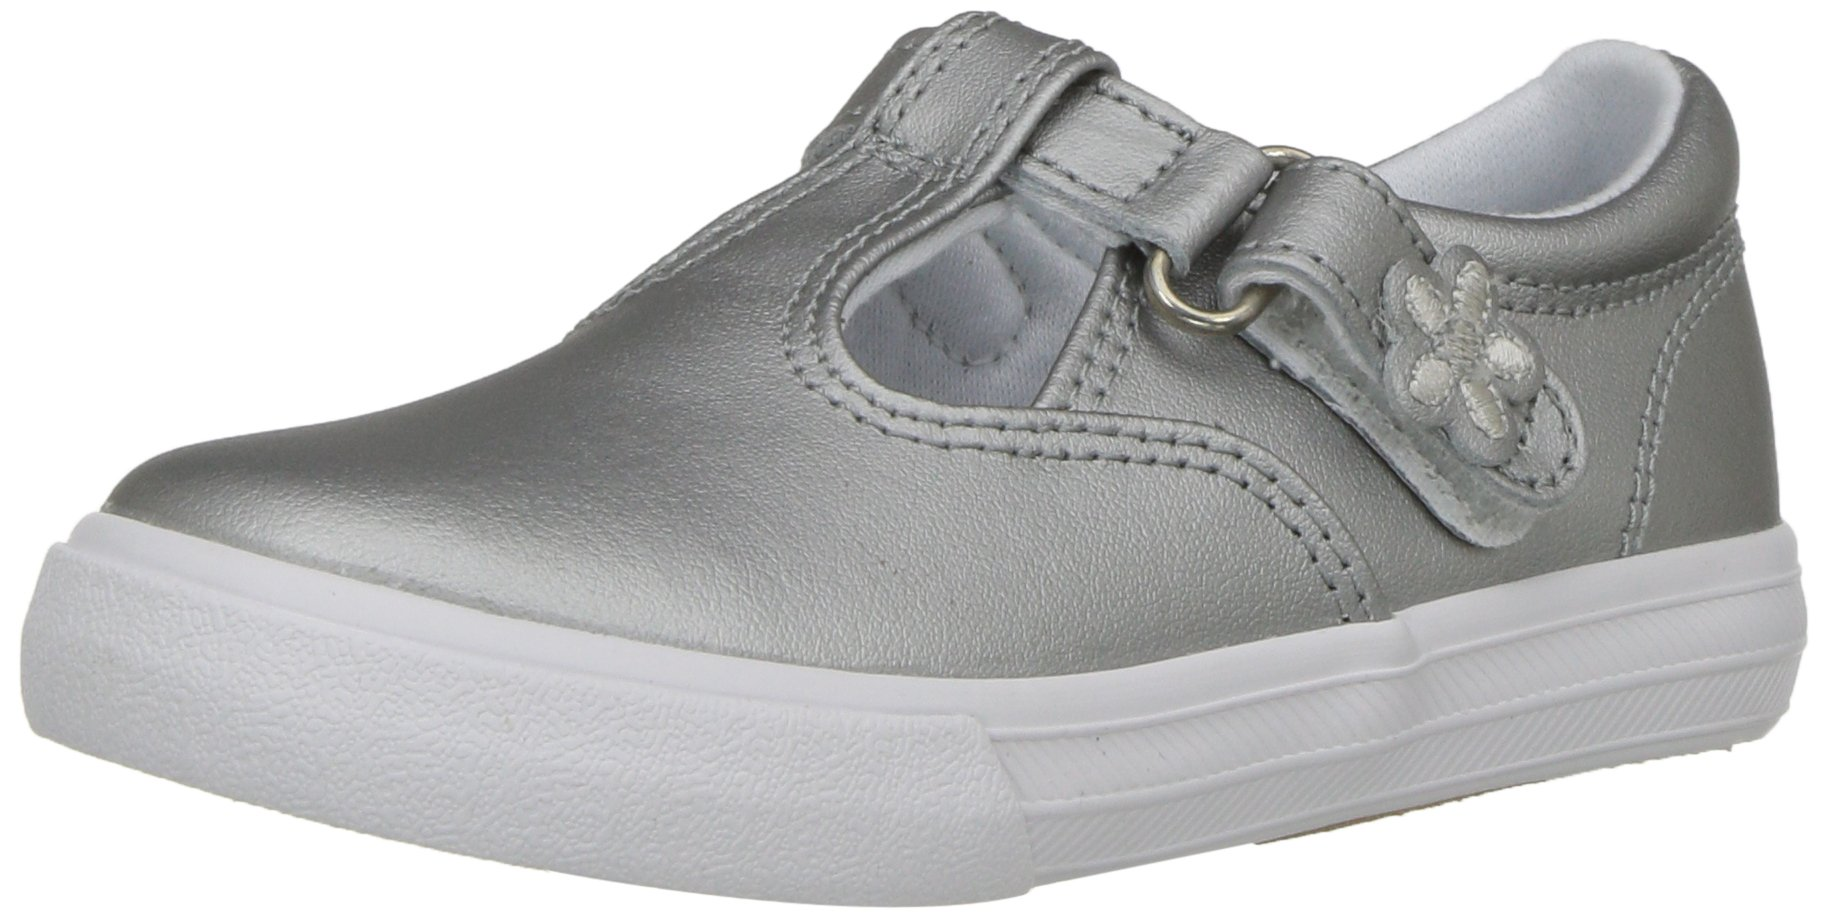 Keds Daphne T-Strap Sneaker (Toddler/Little Kid), Silver/Silver, 5.5 M US Toddler